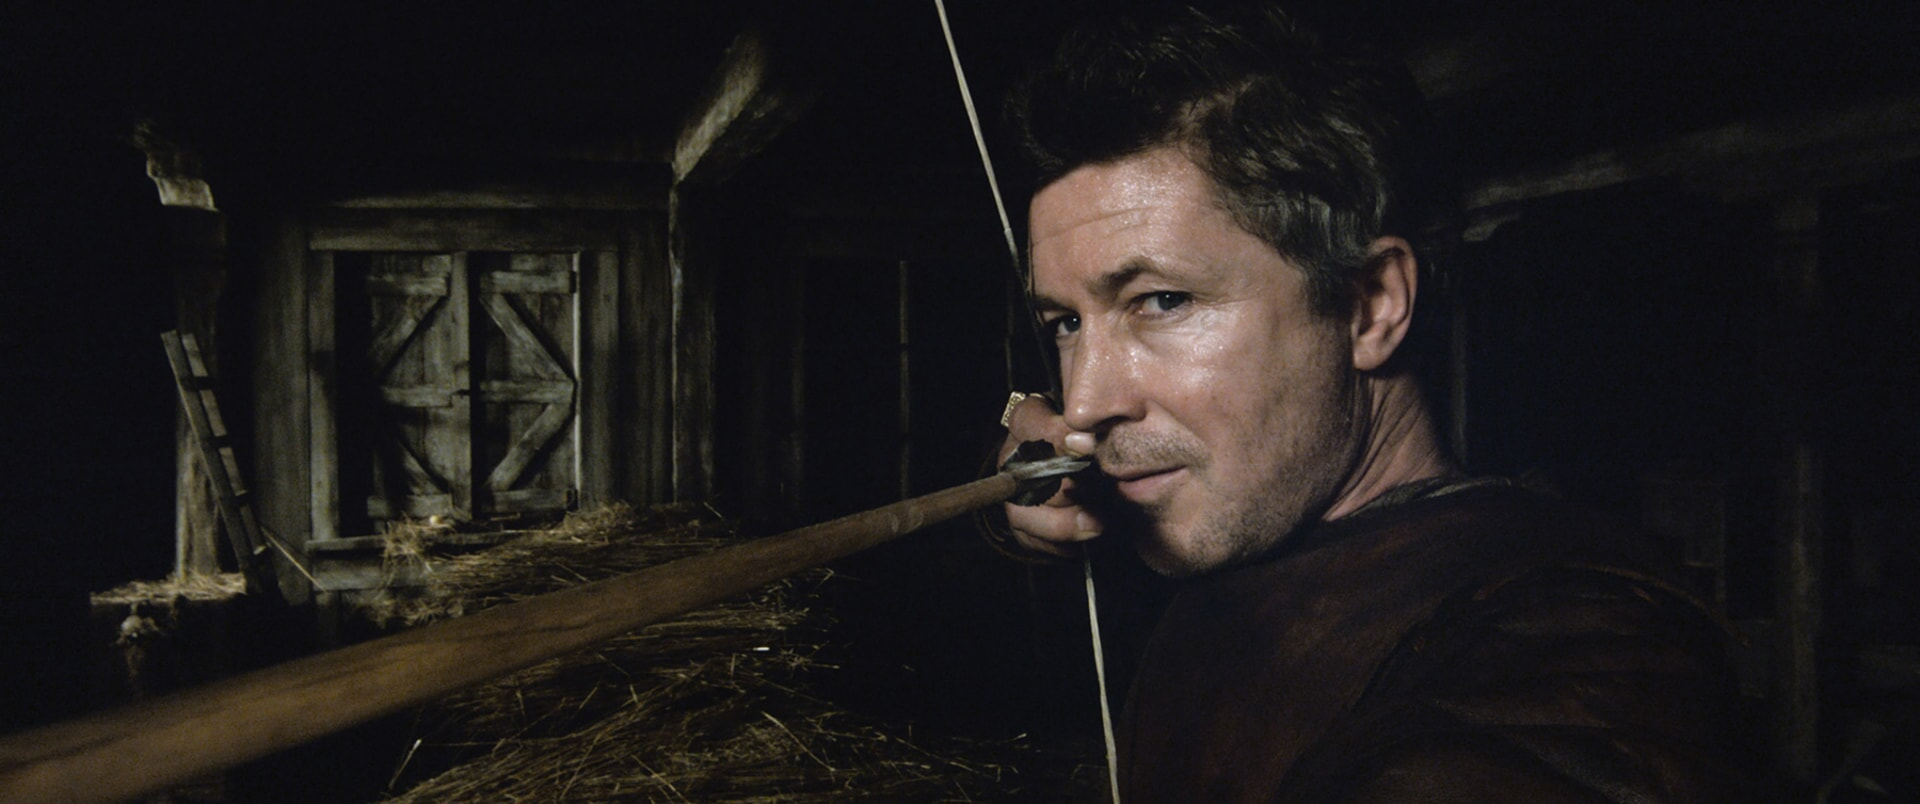 "AIDAN GILLEN as Bill in Warner Bros. Pictures' and Village Roadshow Pictures' fantasy action adventure ""KING ARTHUR: LEGEND OF THE SWORD,"" distributed worldwide by Warner Bros. Pictures and in select territories by Village Roadshow Pictures."